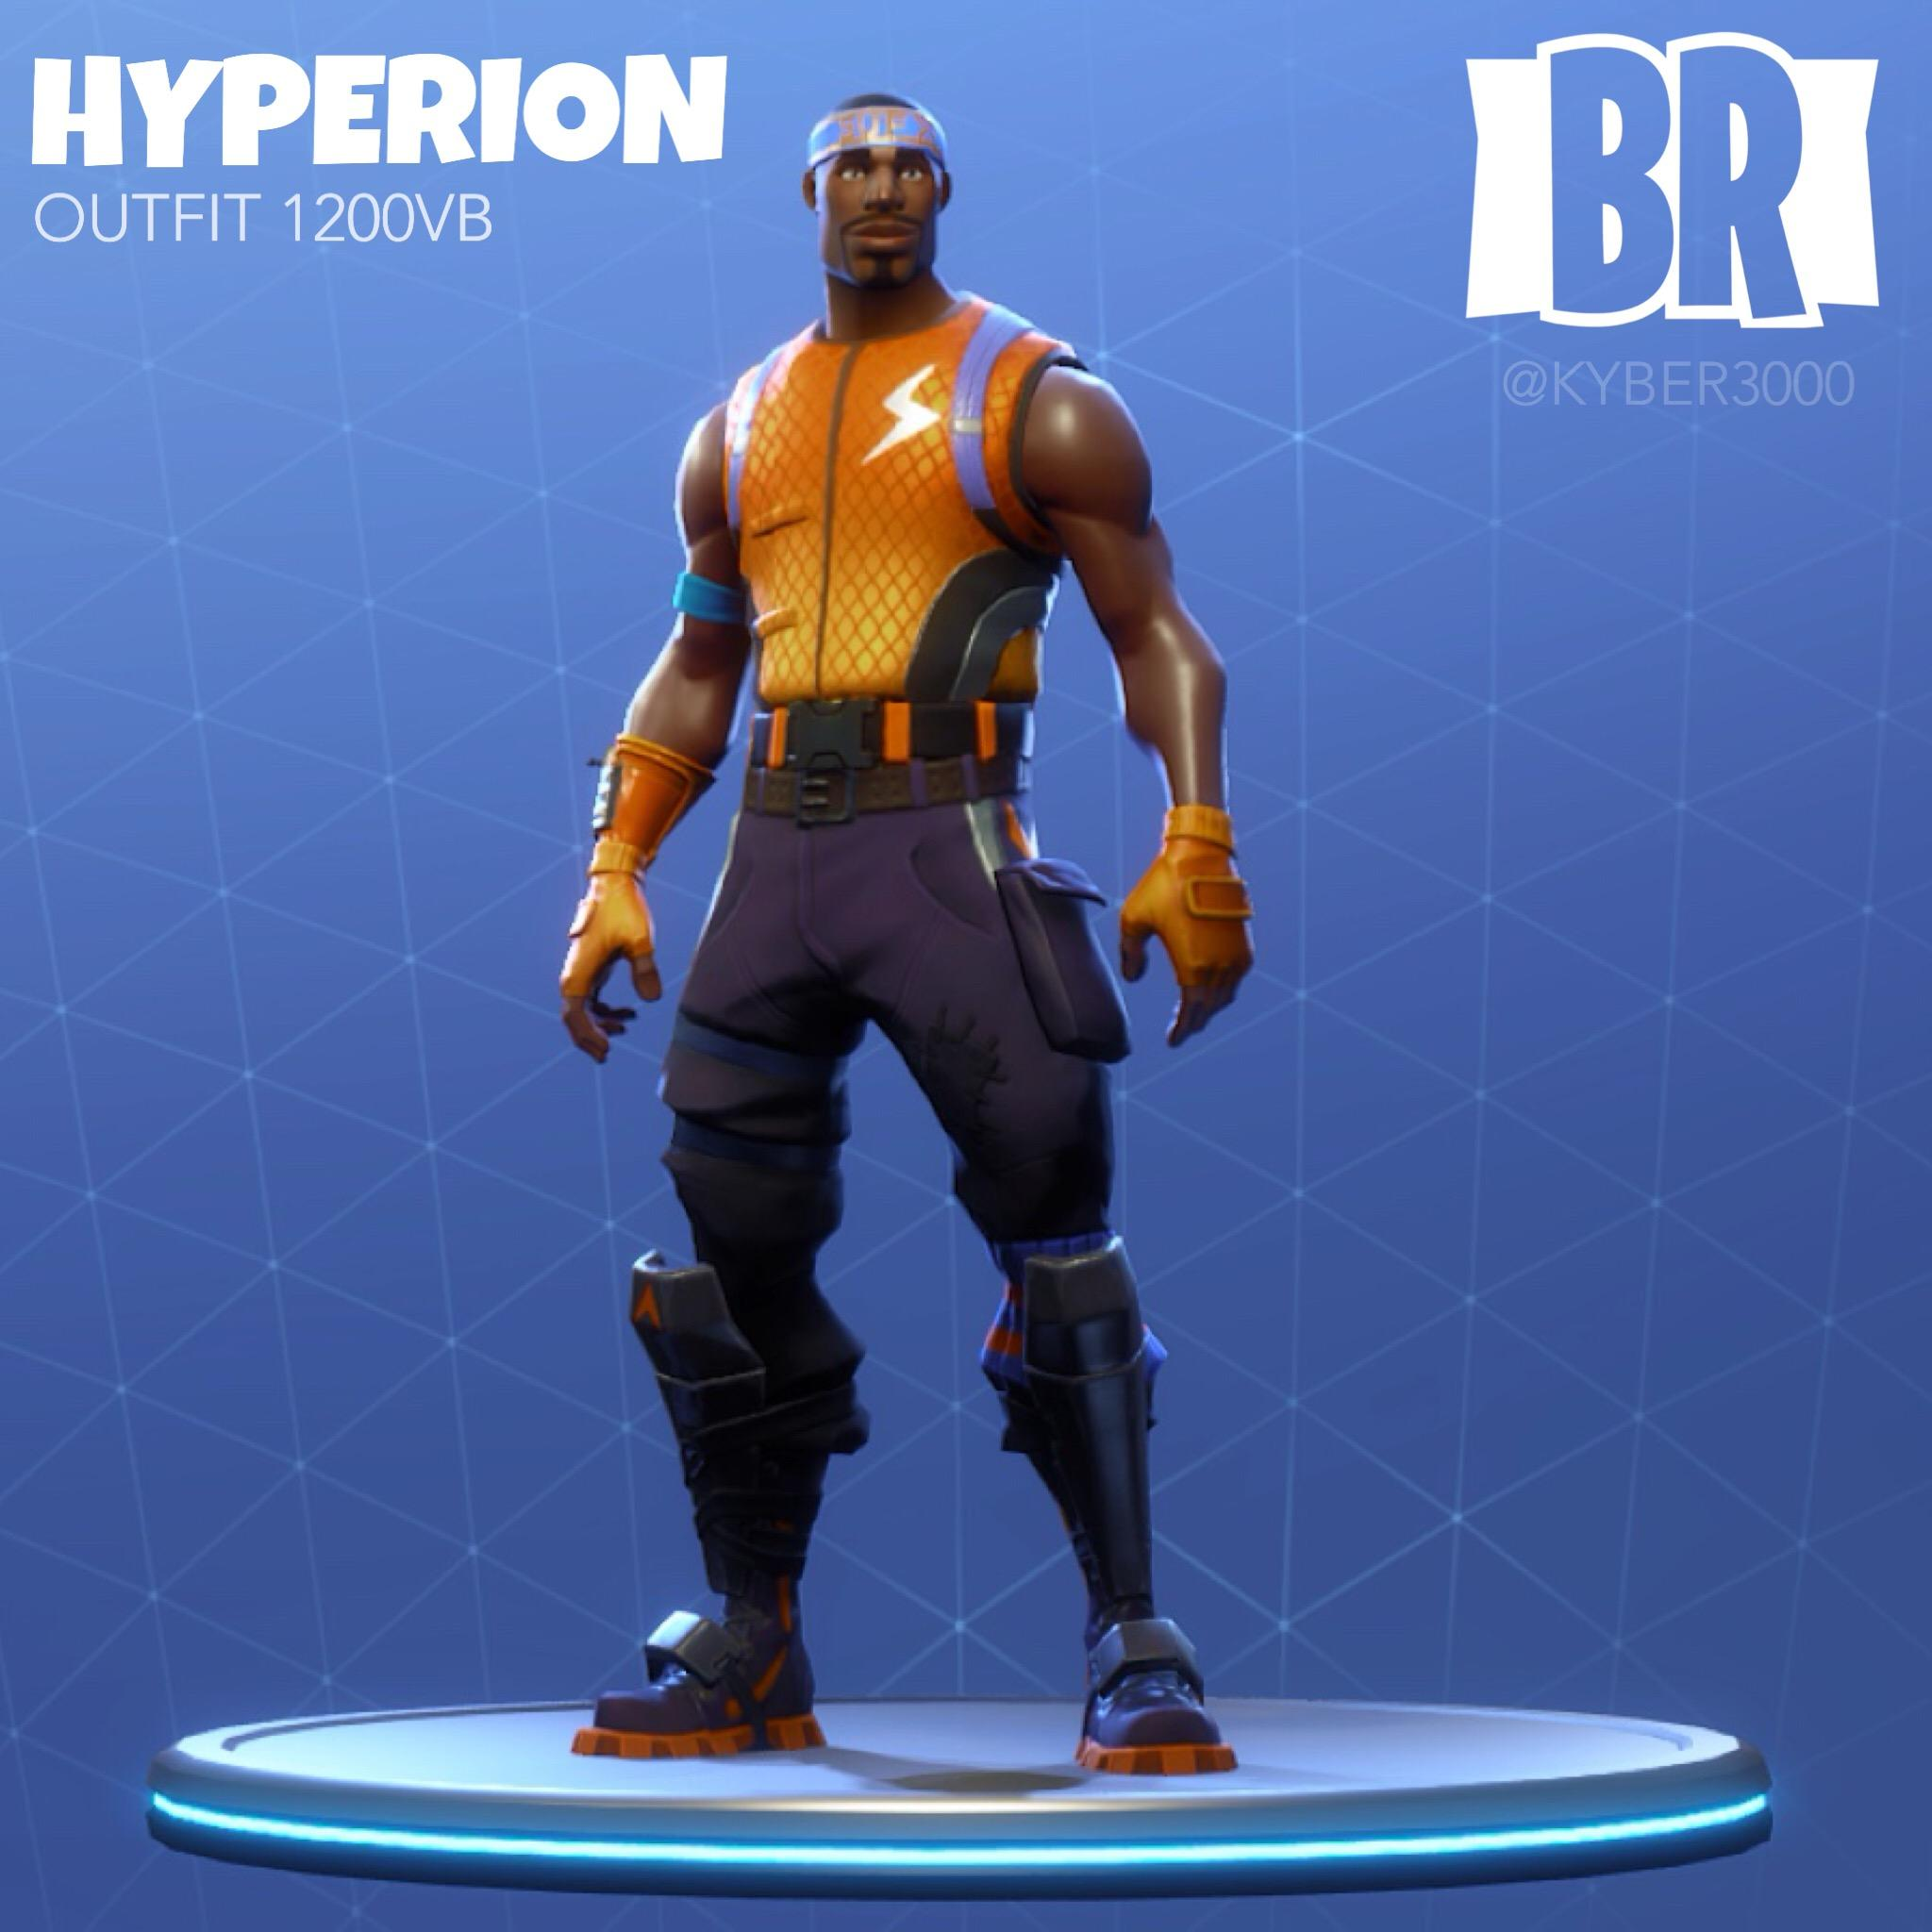 Hyperion Fortnite wallpapers